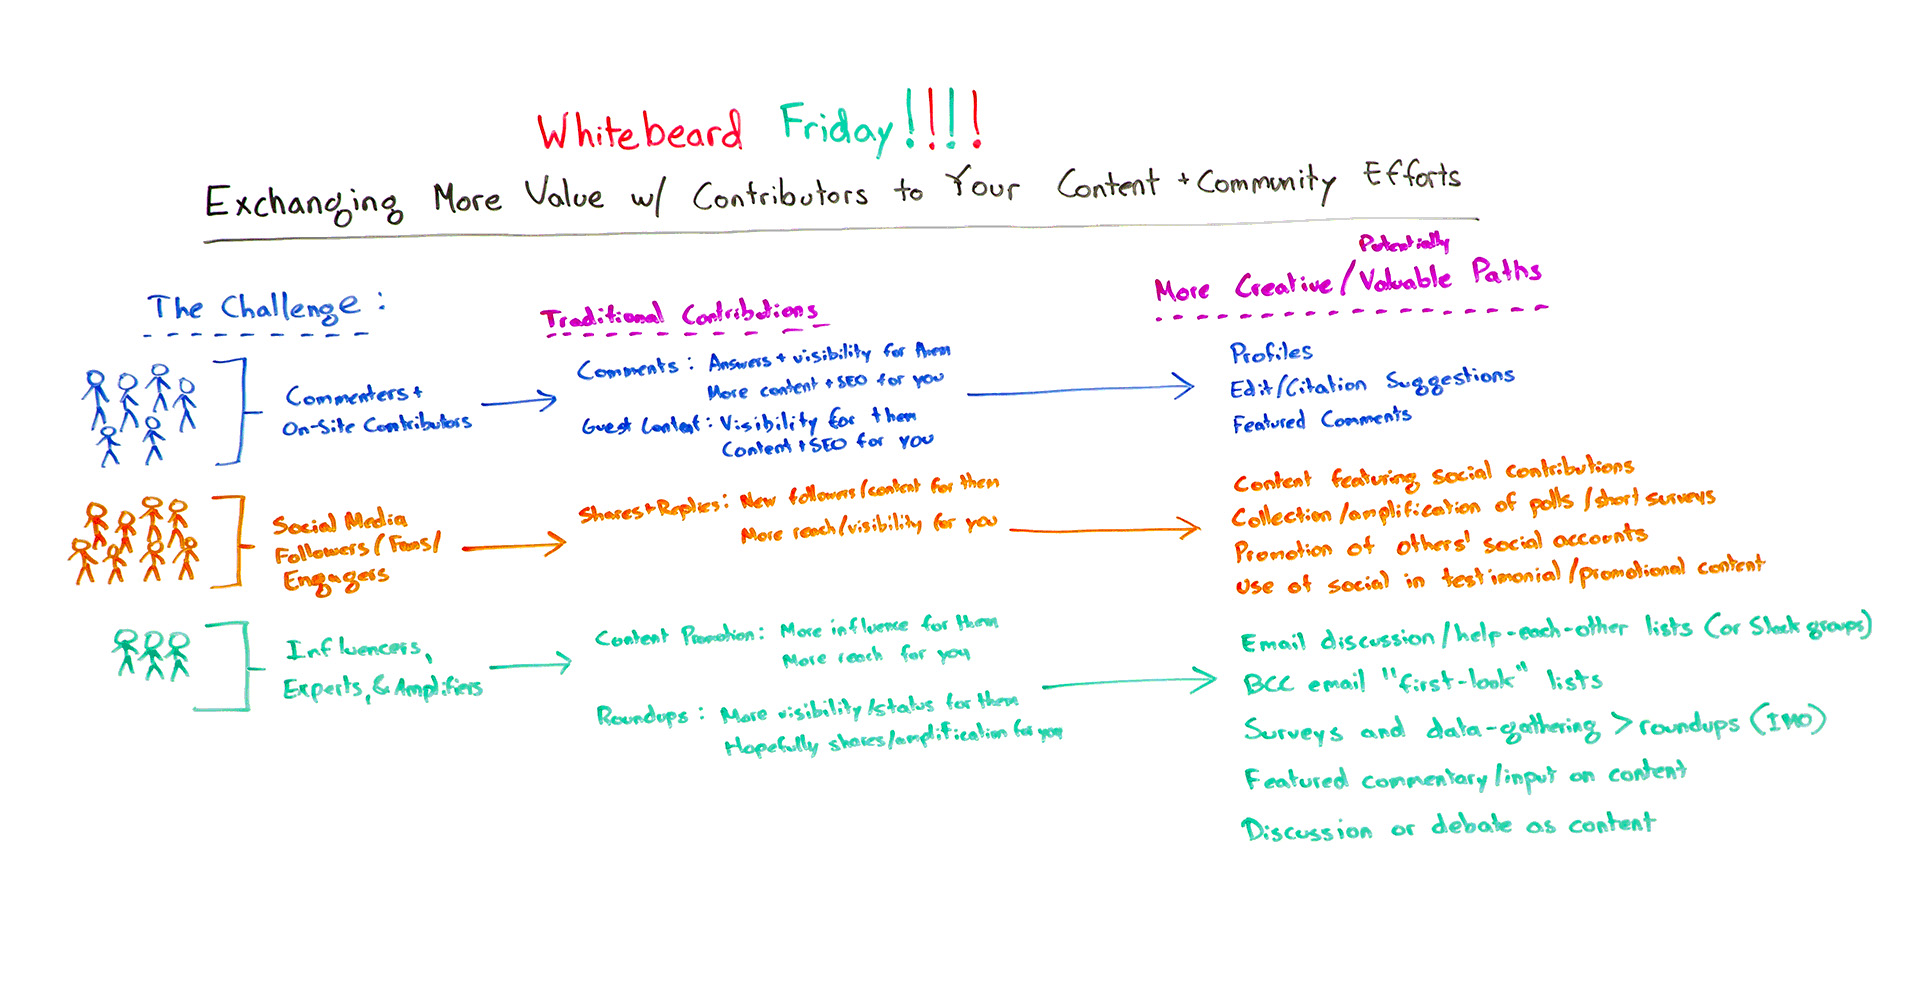 Exchanging More Value with Contributors to Your Content and Community Efforts – Whiteboard Friday